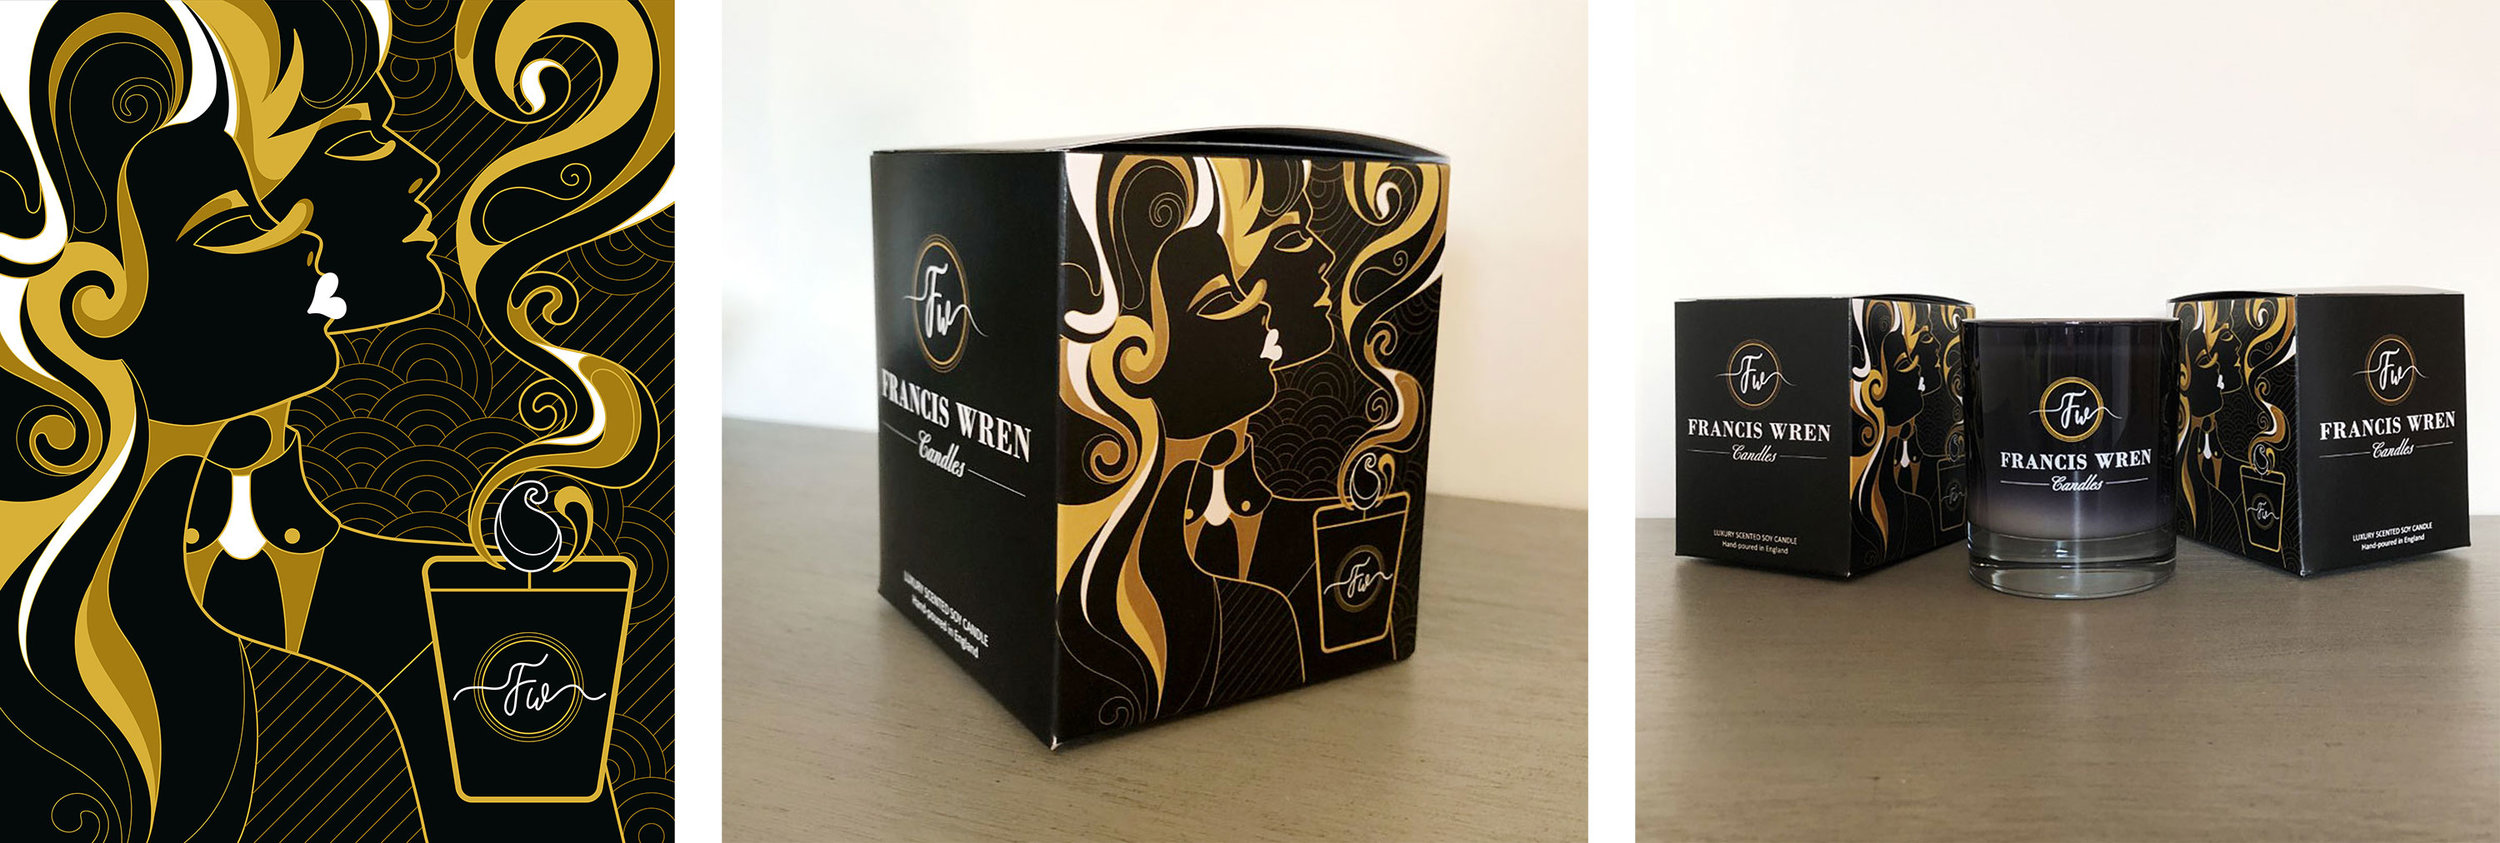 Commission for Francis Wren Candles - Packaging